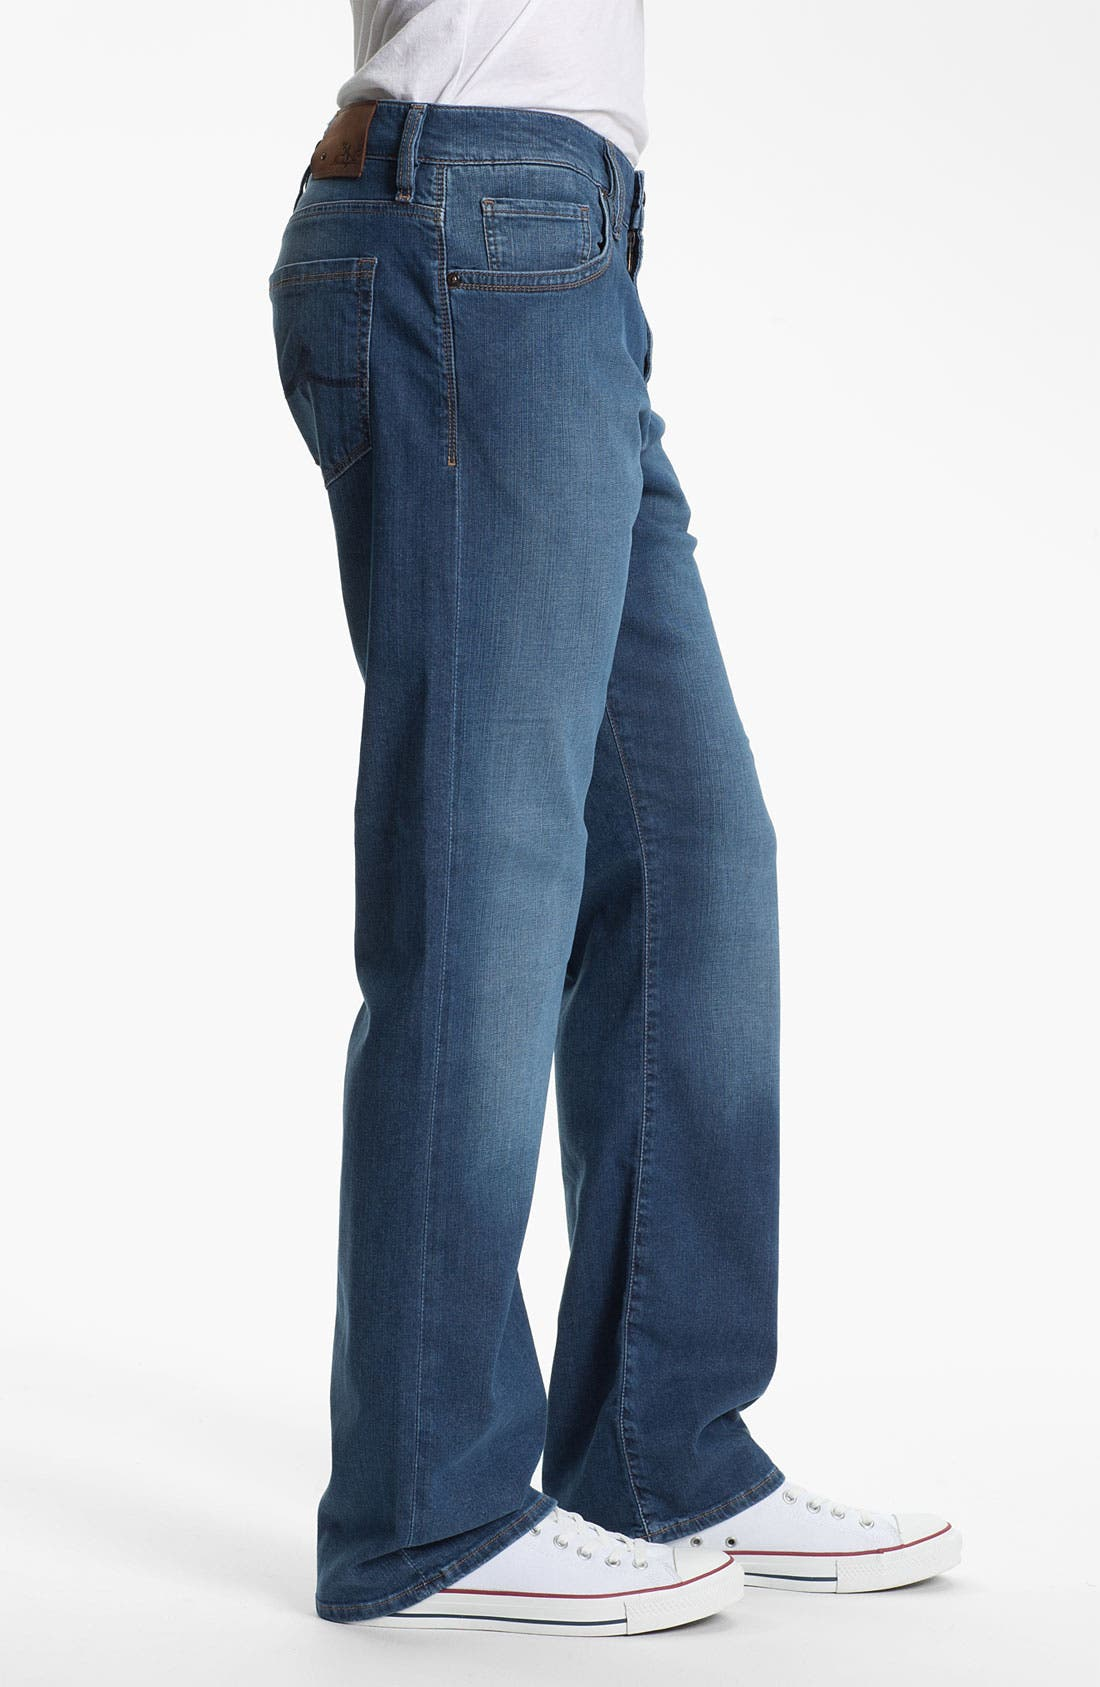 Alternate Image 3  - 34 Heritage 'Courage' Straight Leg Jeans (Mid Cashmere) (Online Exclusive)